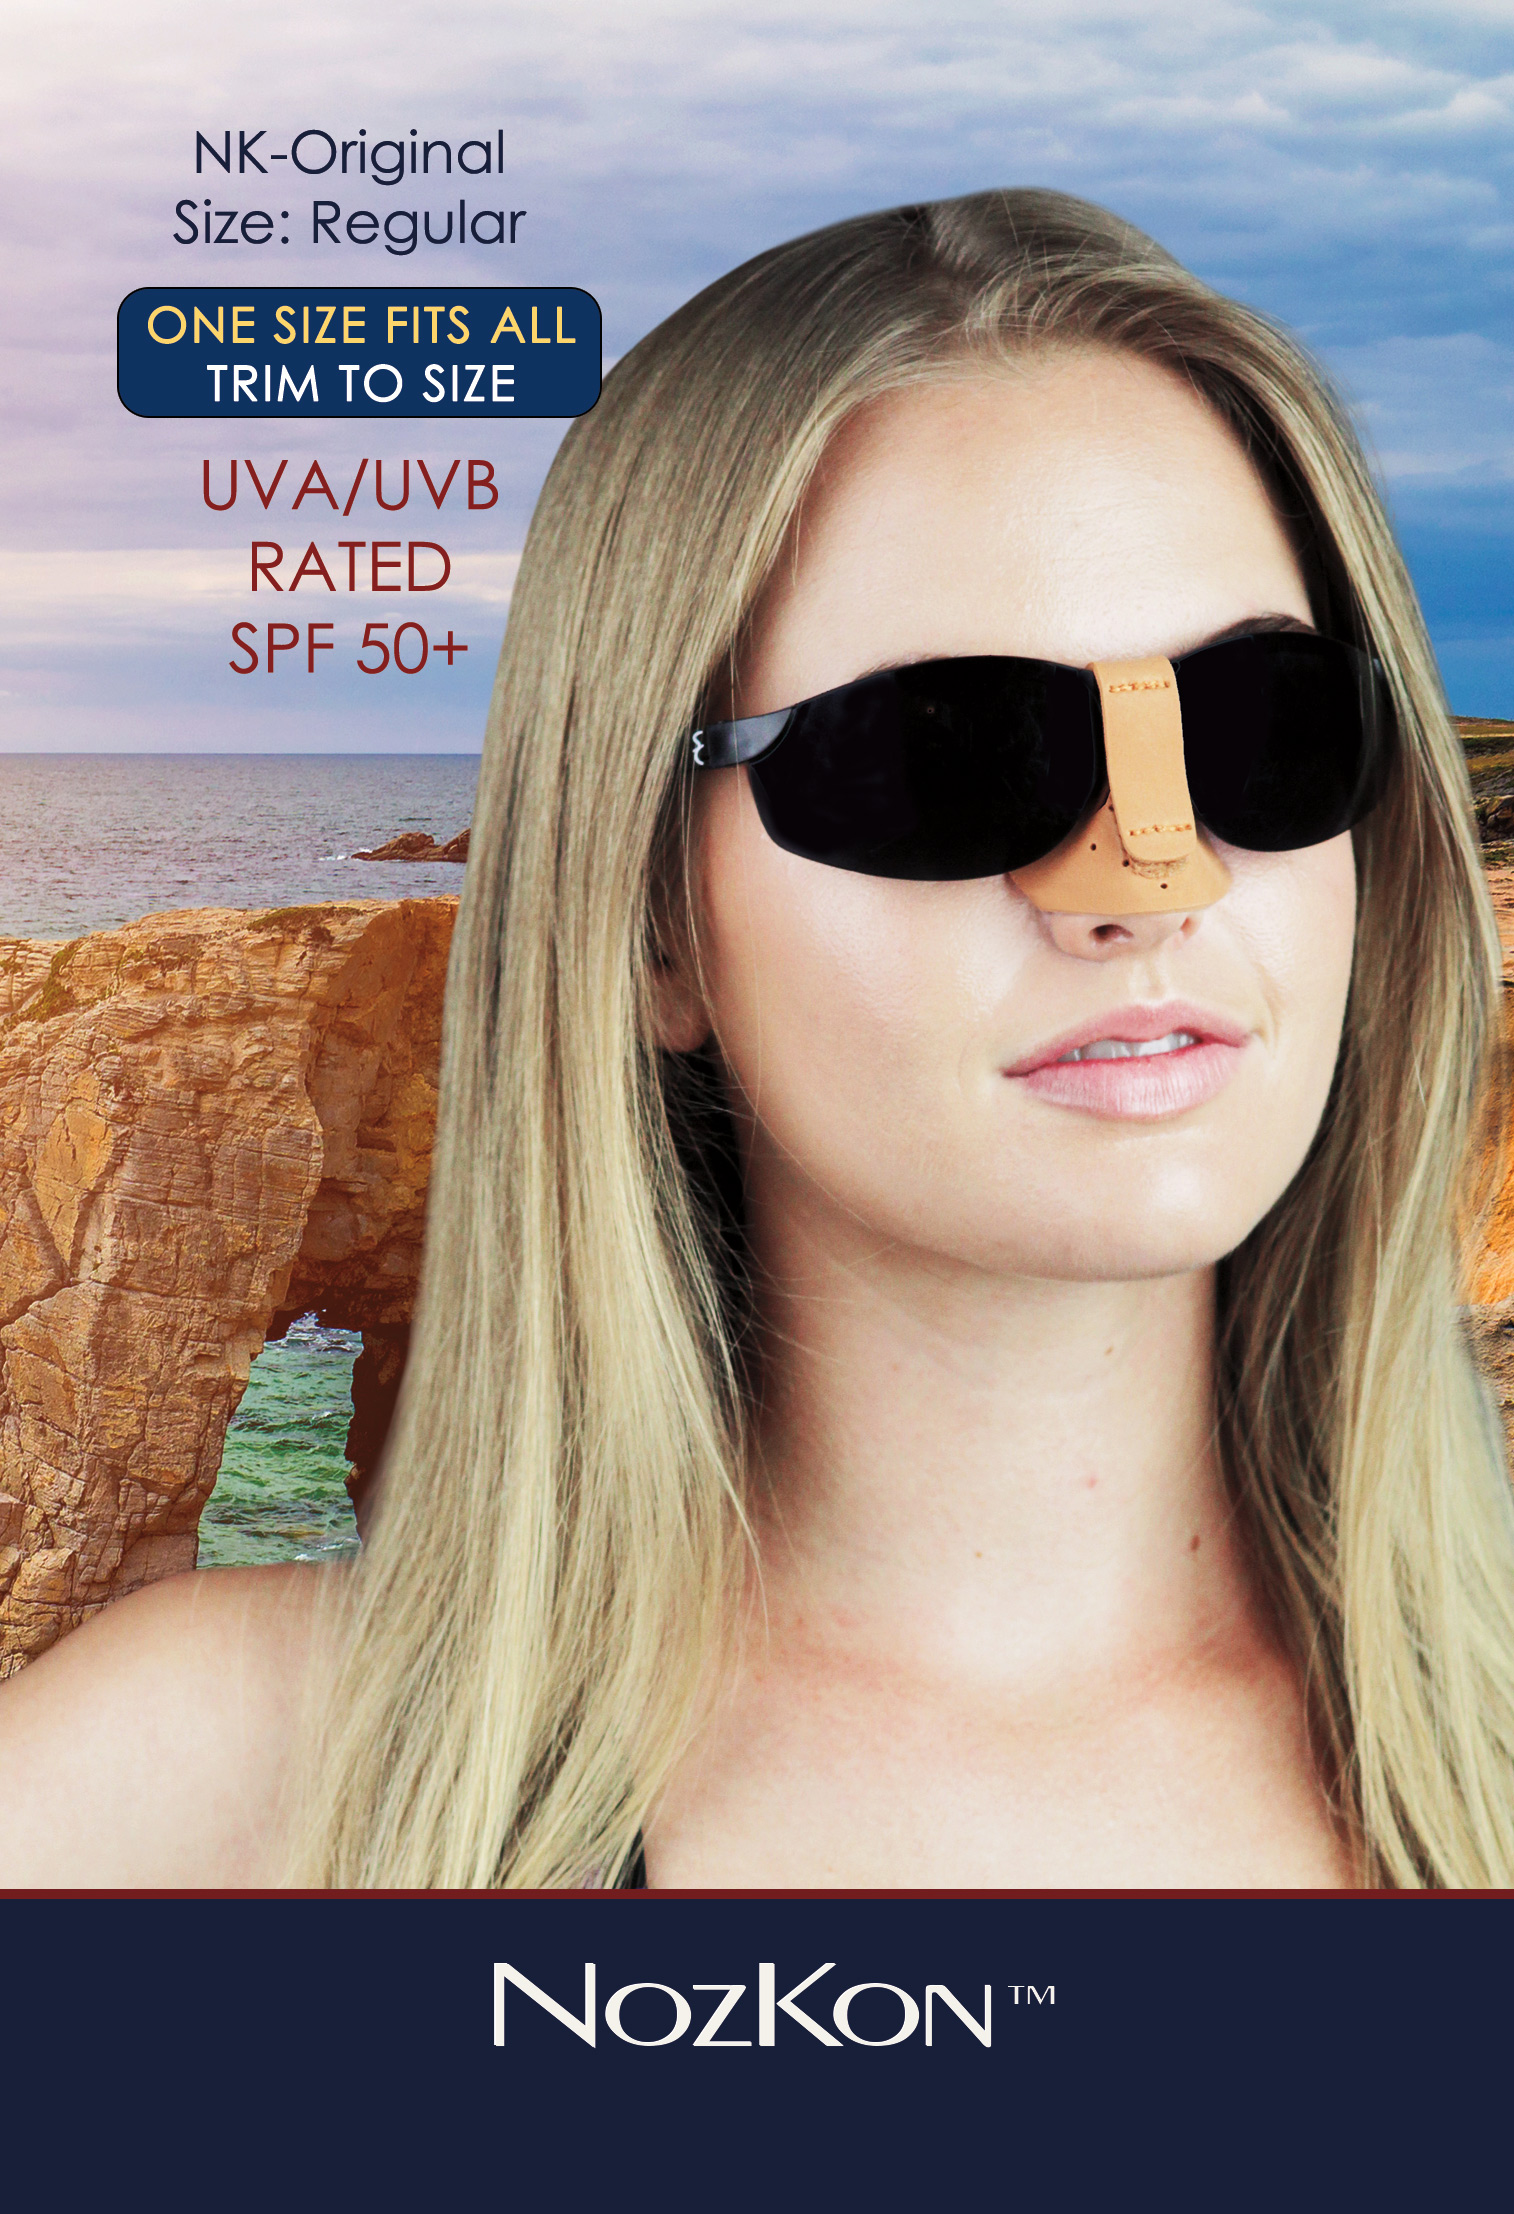 7b6c65111a81 NozKon.com - The newest technology in sun protection for the nose.